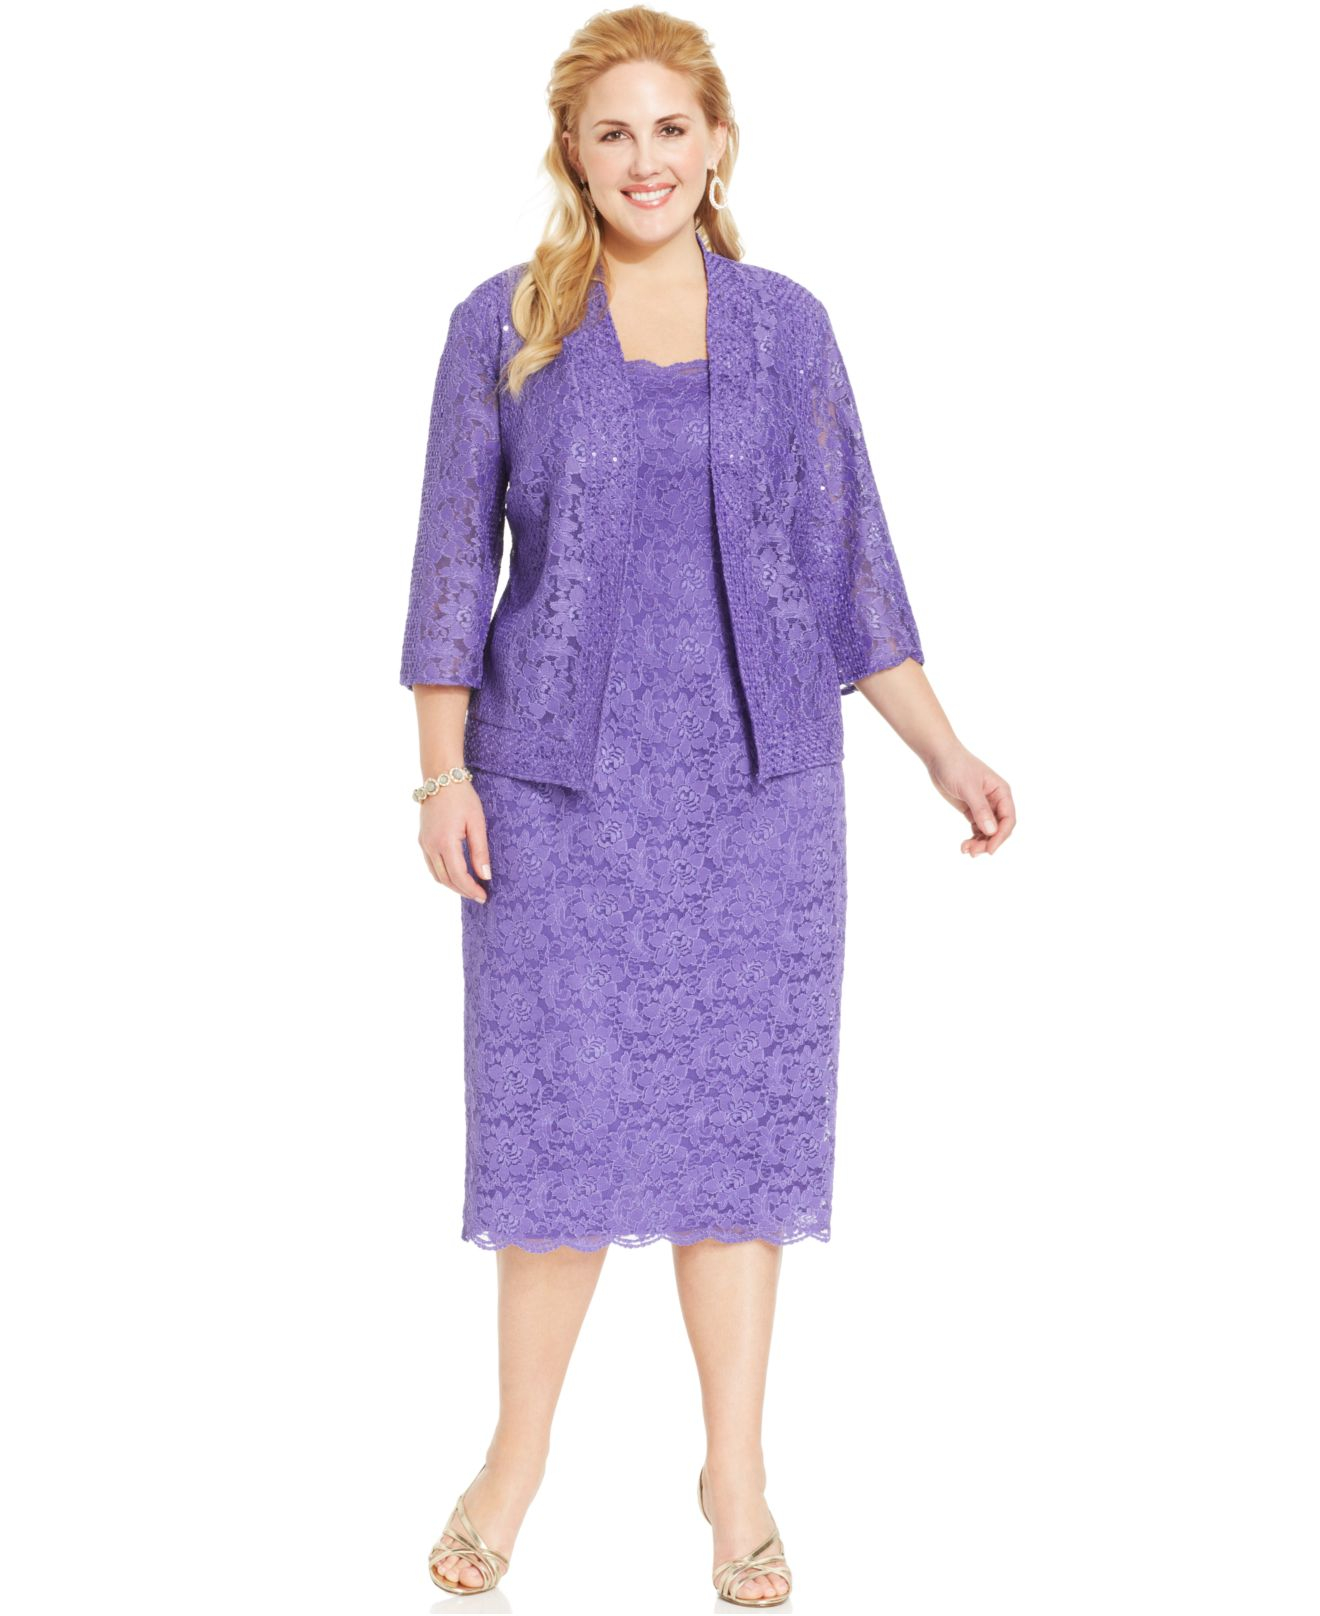 Alex evenings Plus Size Sequin Lace Dress And Jacket in Purple | Lyst